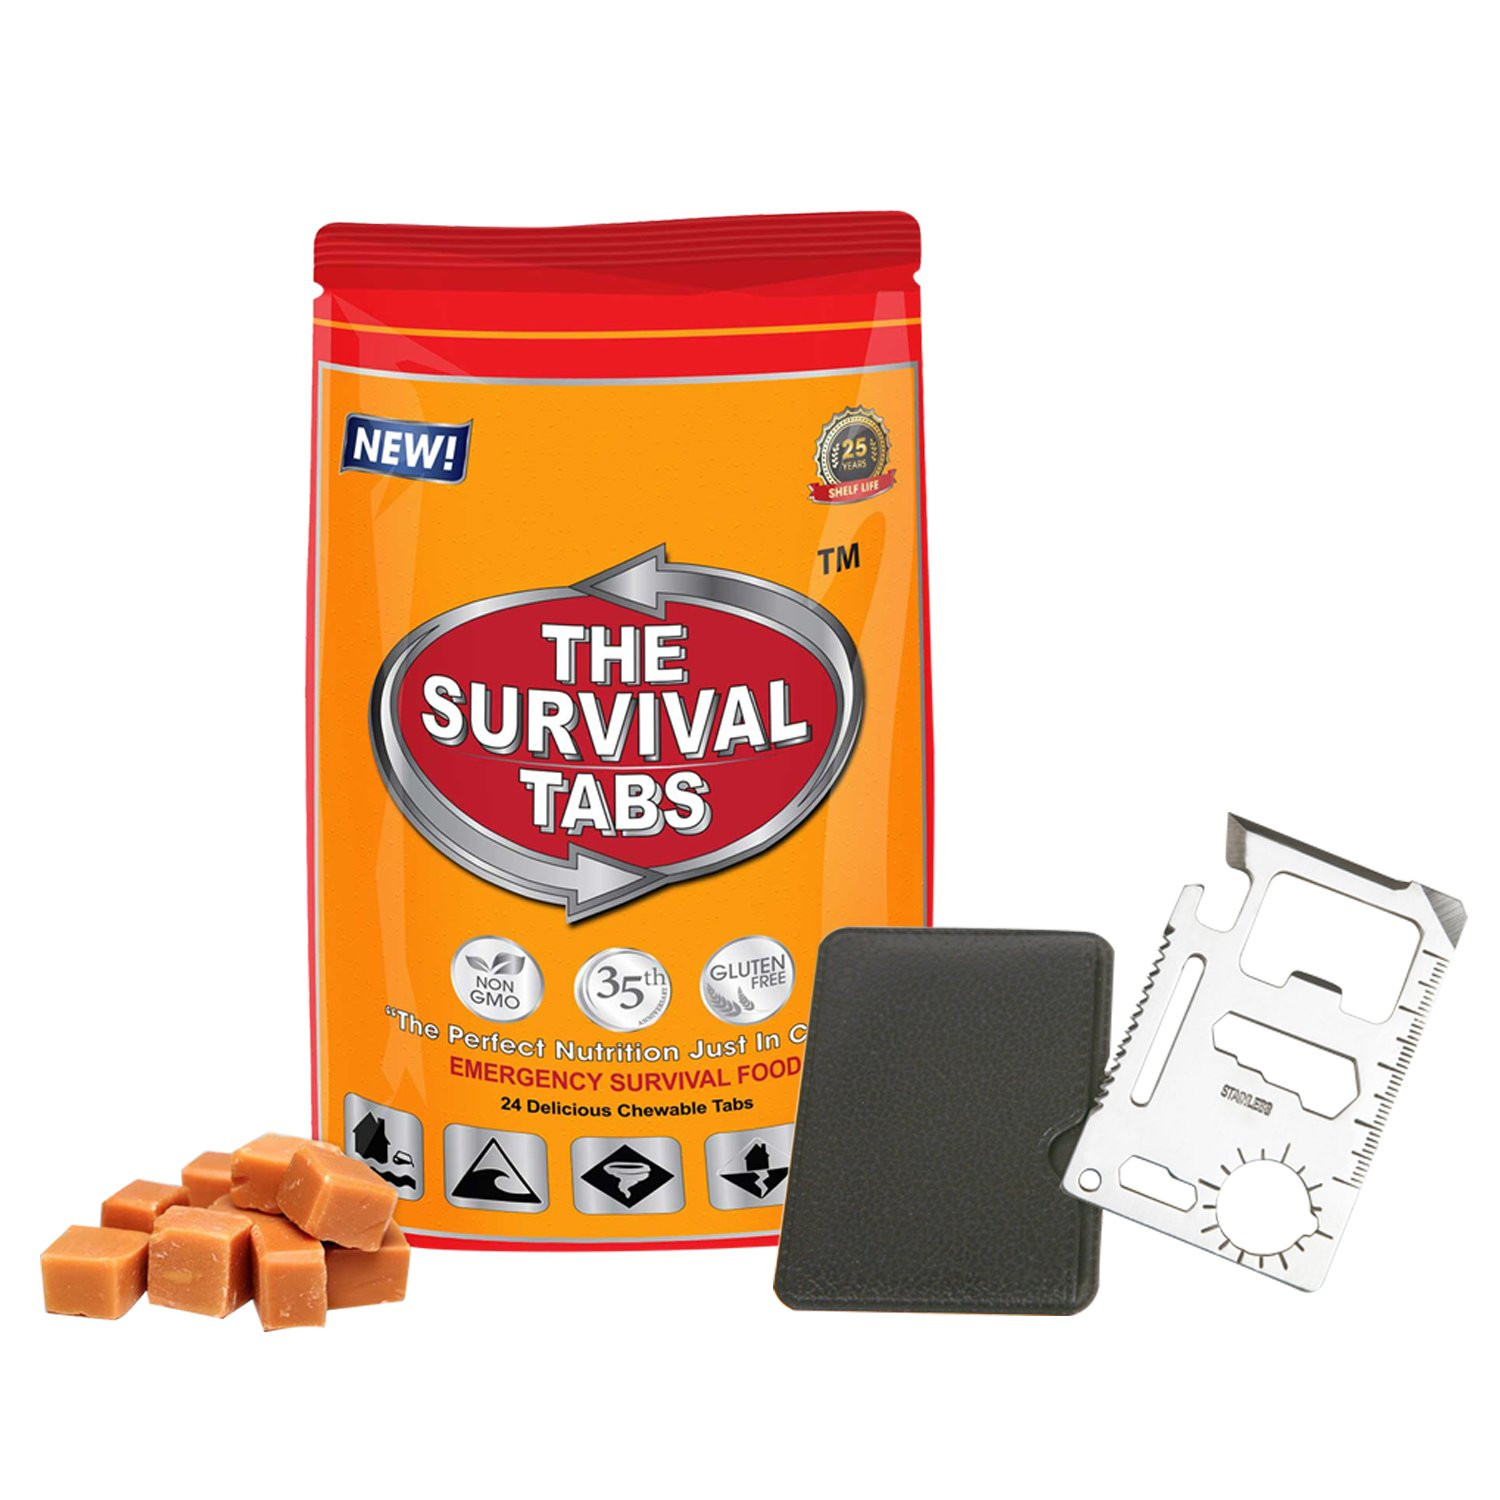 11 in1 Multi Tools Hunting Survival Camping Pocket Military Credit Card Knife + New Advanced Formula MRE Meals Ready-to-eat Survival Meal 2-Day supply 24 tabs Ultimate Bugout Food 25 Years shelf life Gluten Free and Non-GMO - Butterscotch Flavor я пришел иносказания библии